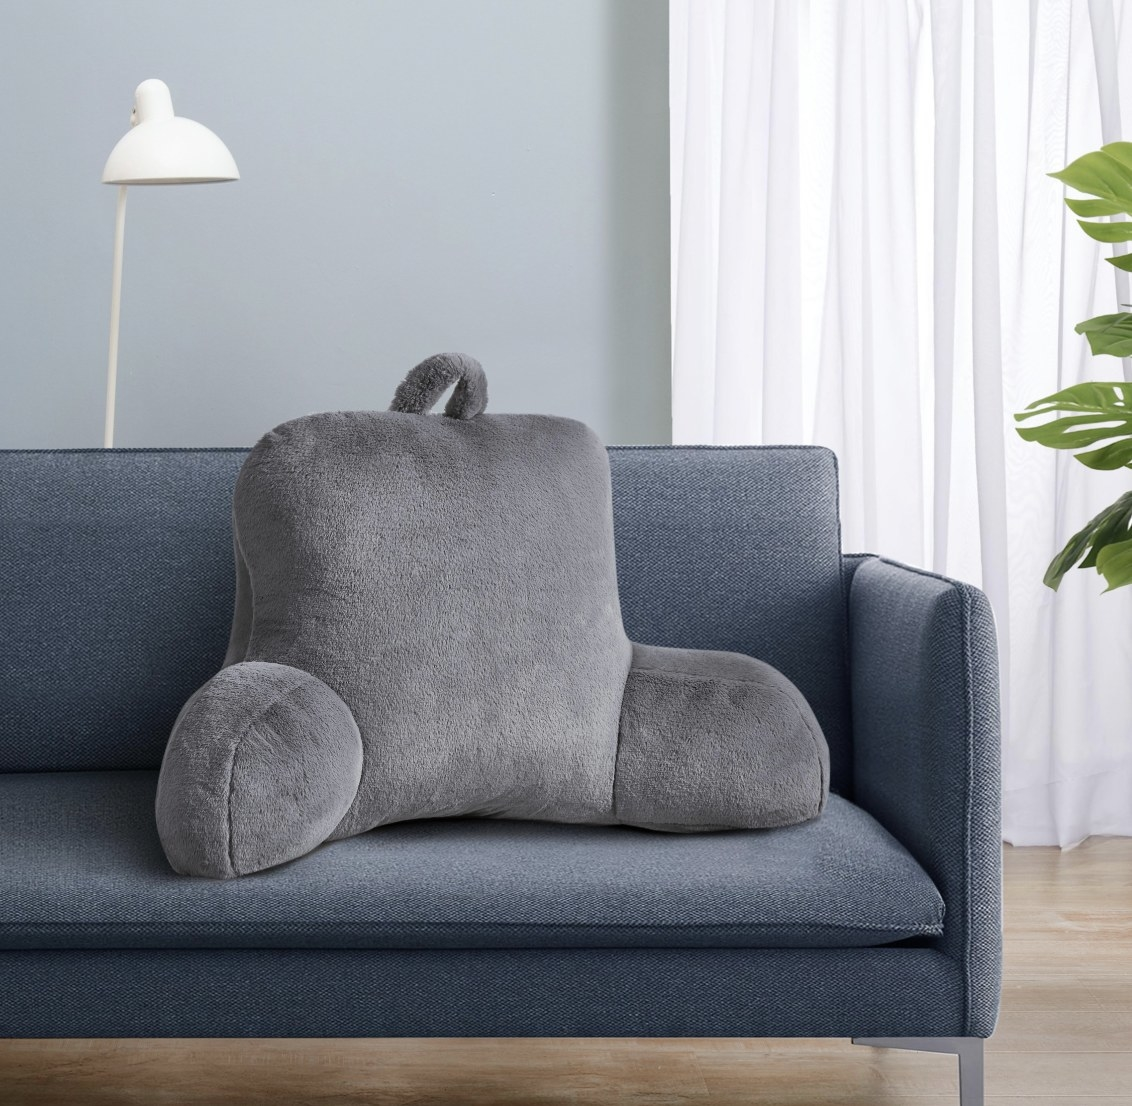 The grey plush pillow has two arms and a handle on the top